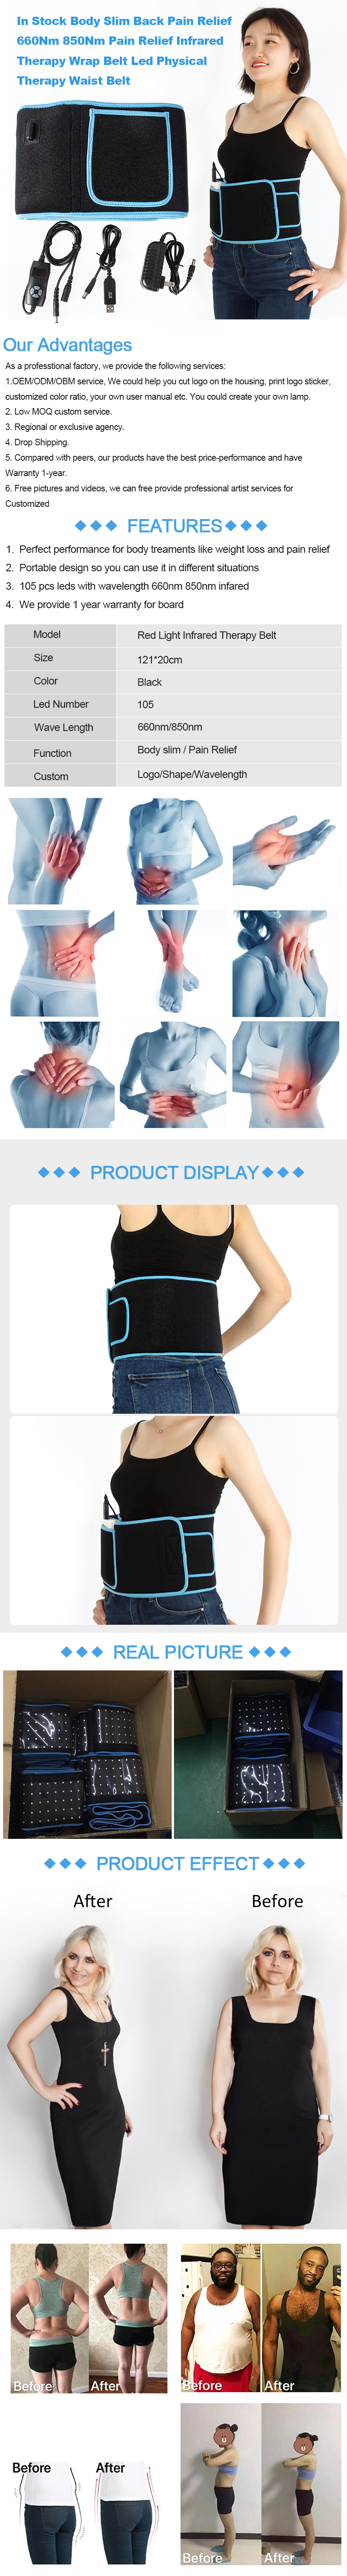 new design infrared LED light therapy wrap red light therapy belt portable wrap back pain relief body slim adjustable waist belt